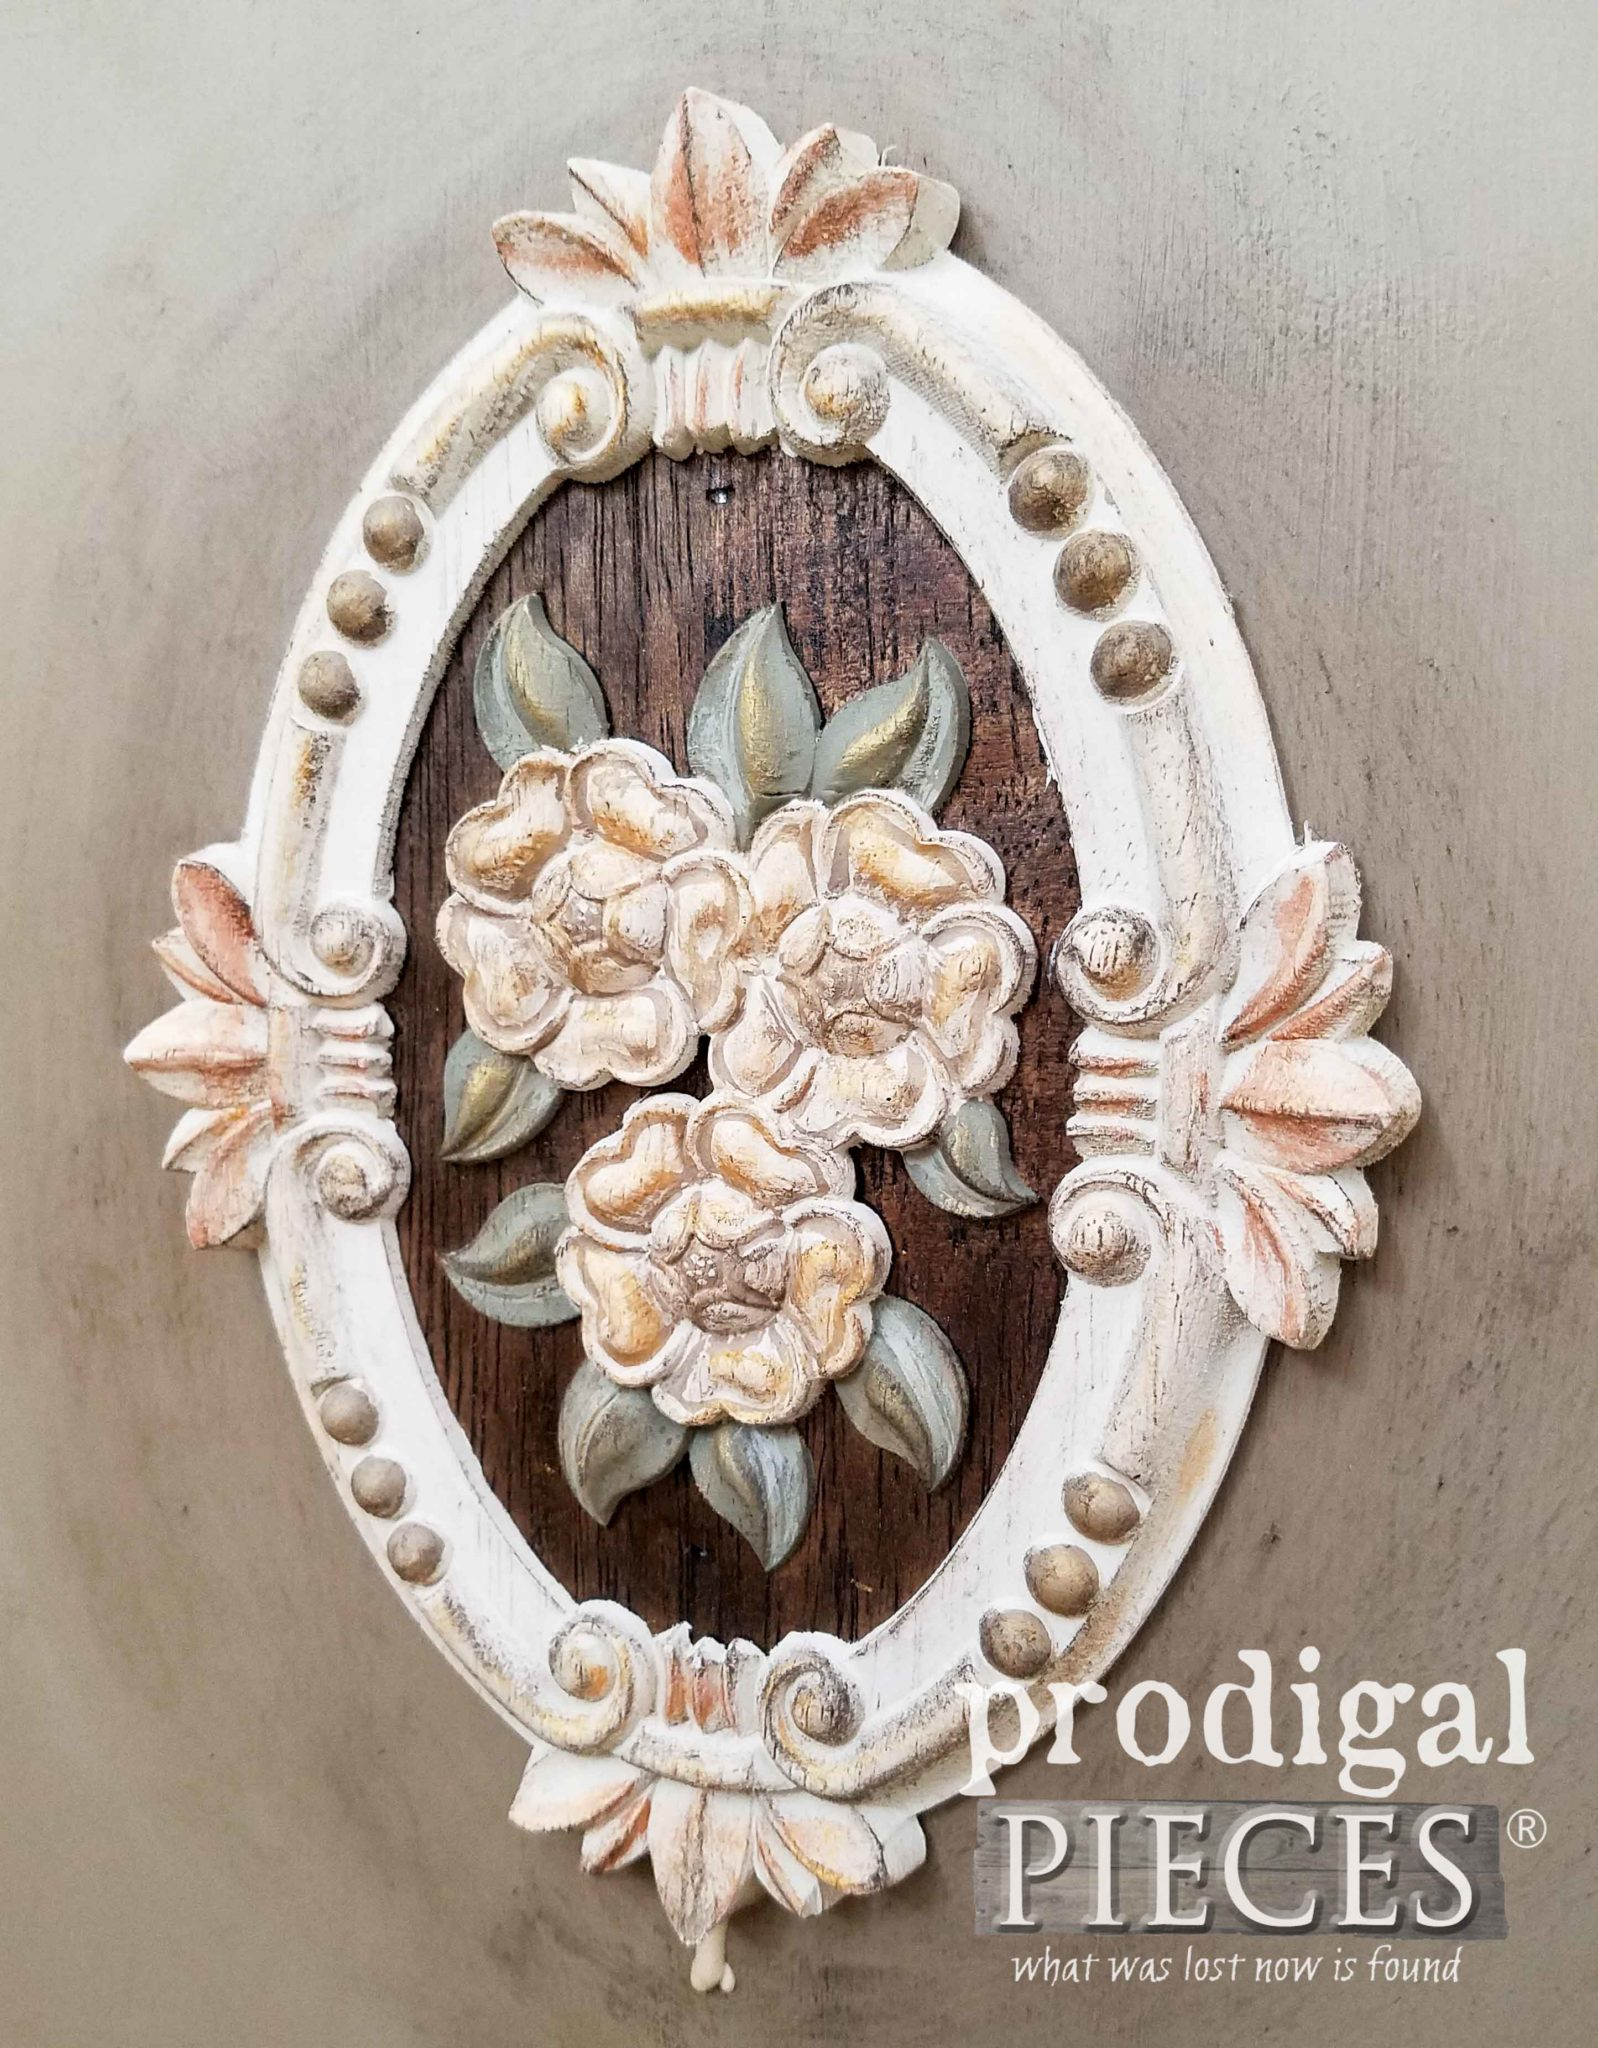 Gilded Wood Applique with Dixie Belle Paint Products by Larissa of Prodigal Pieces | prodigalpieces.com